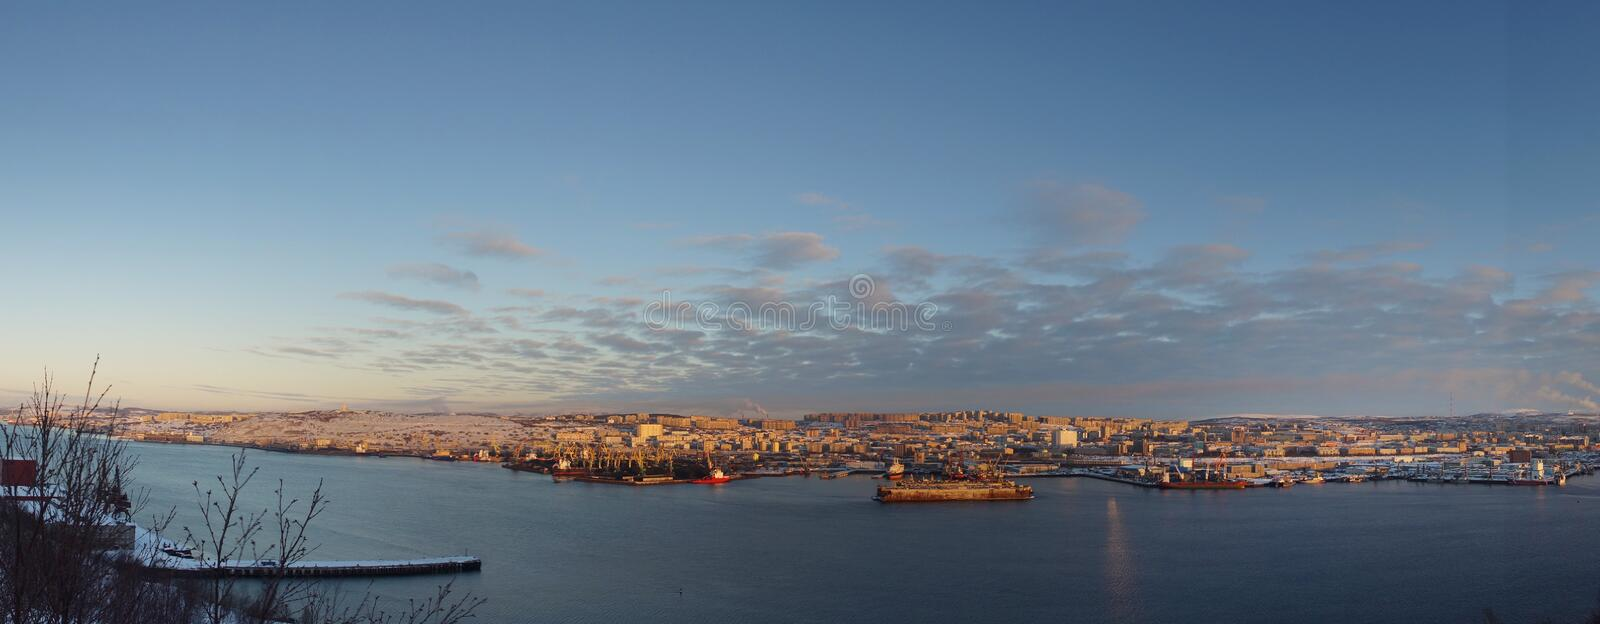 Panorama of the sea city at sunset, the old ship dock stands on the pier in the middle of the bay stock image